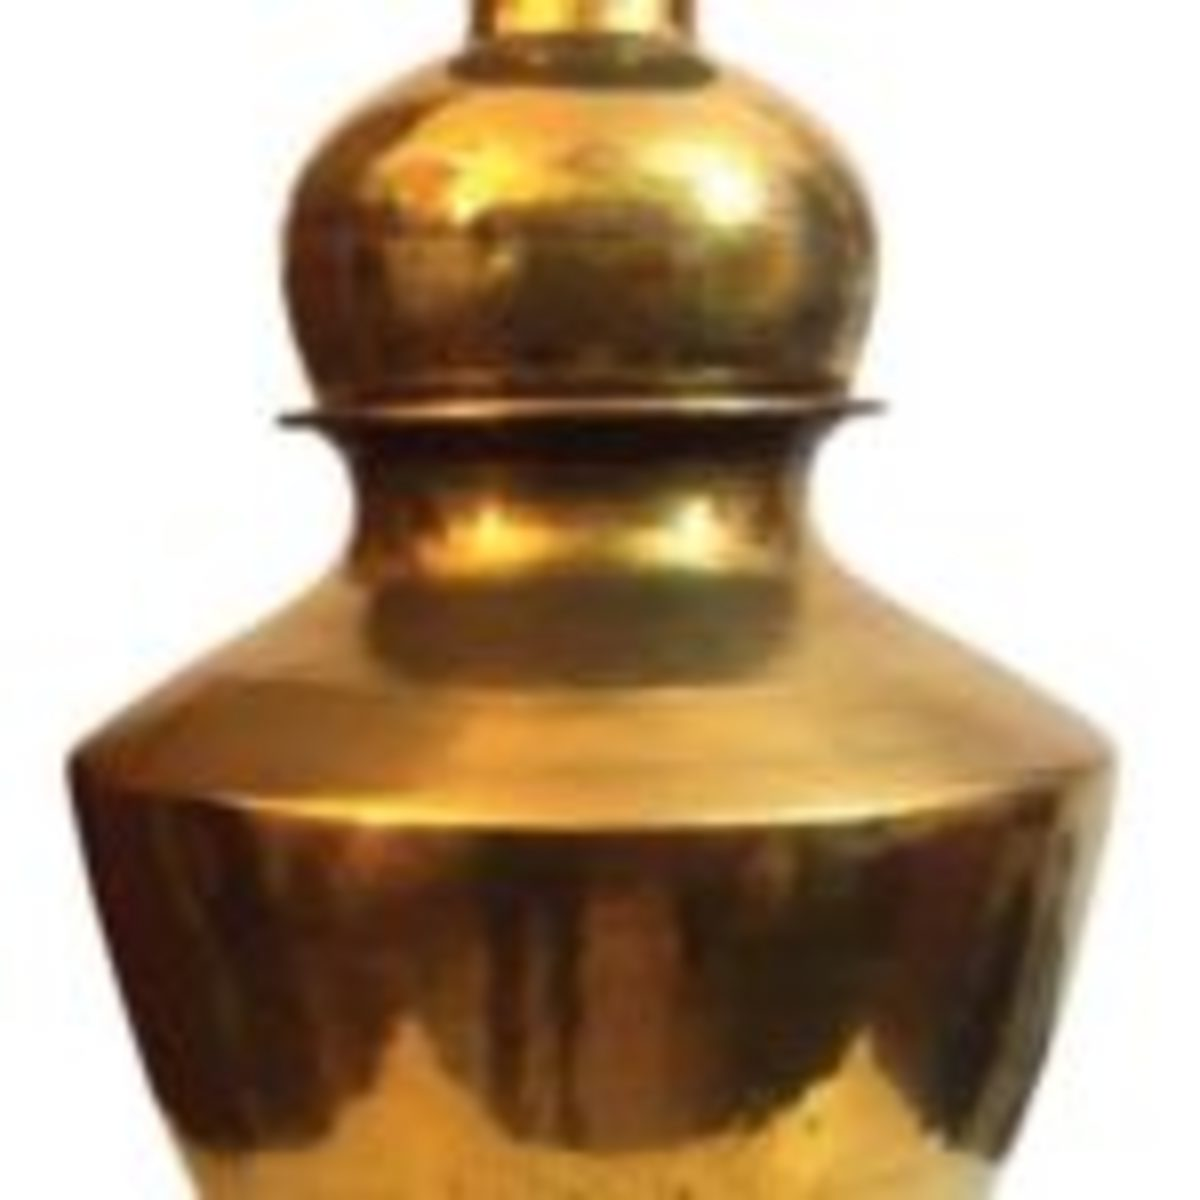 Indian brass milk pot.This container is of an ancient design. They were used in rural villages to transport milk or water. These were treasured items and were handed down the family from one generation to another.